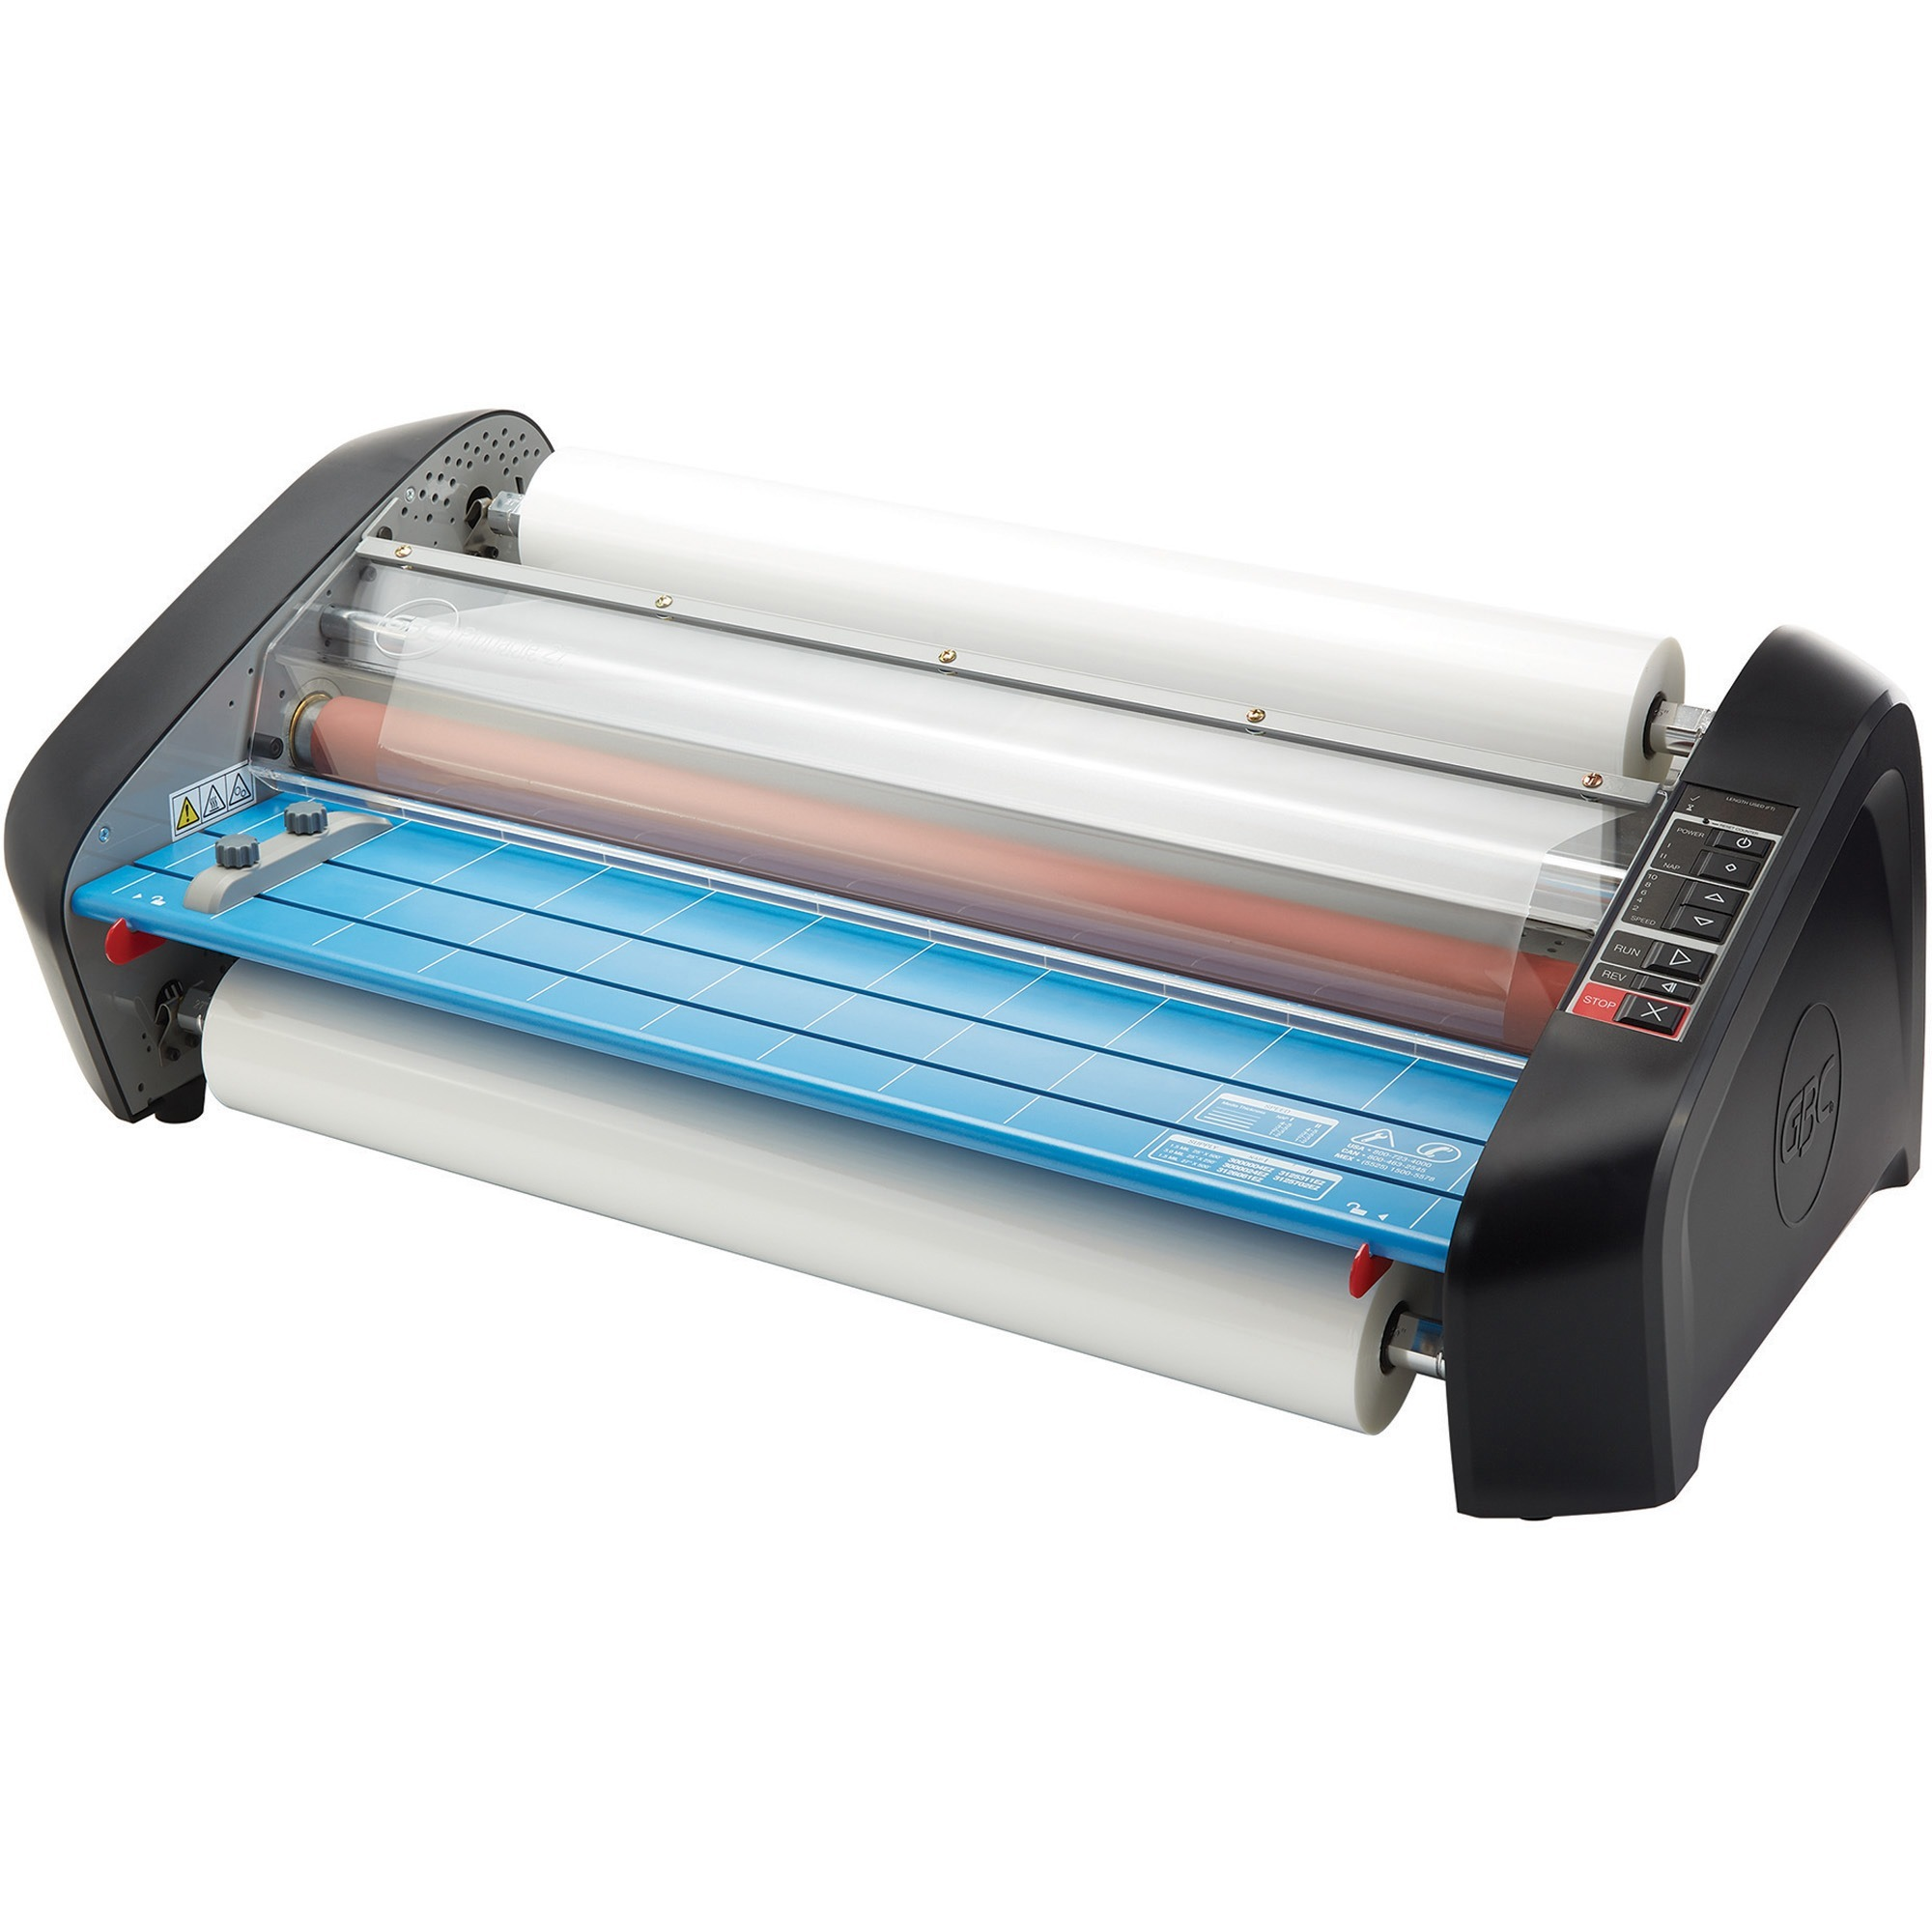 "GBC, GBC1701700, Pinnacle 27 Thermal Roll Laminator, NAP I/II, 27"" Max. Width, 8-10 Min Warm-Up, 1, Gray,Blue"